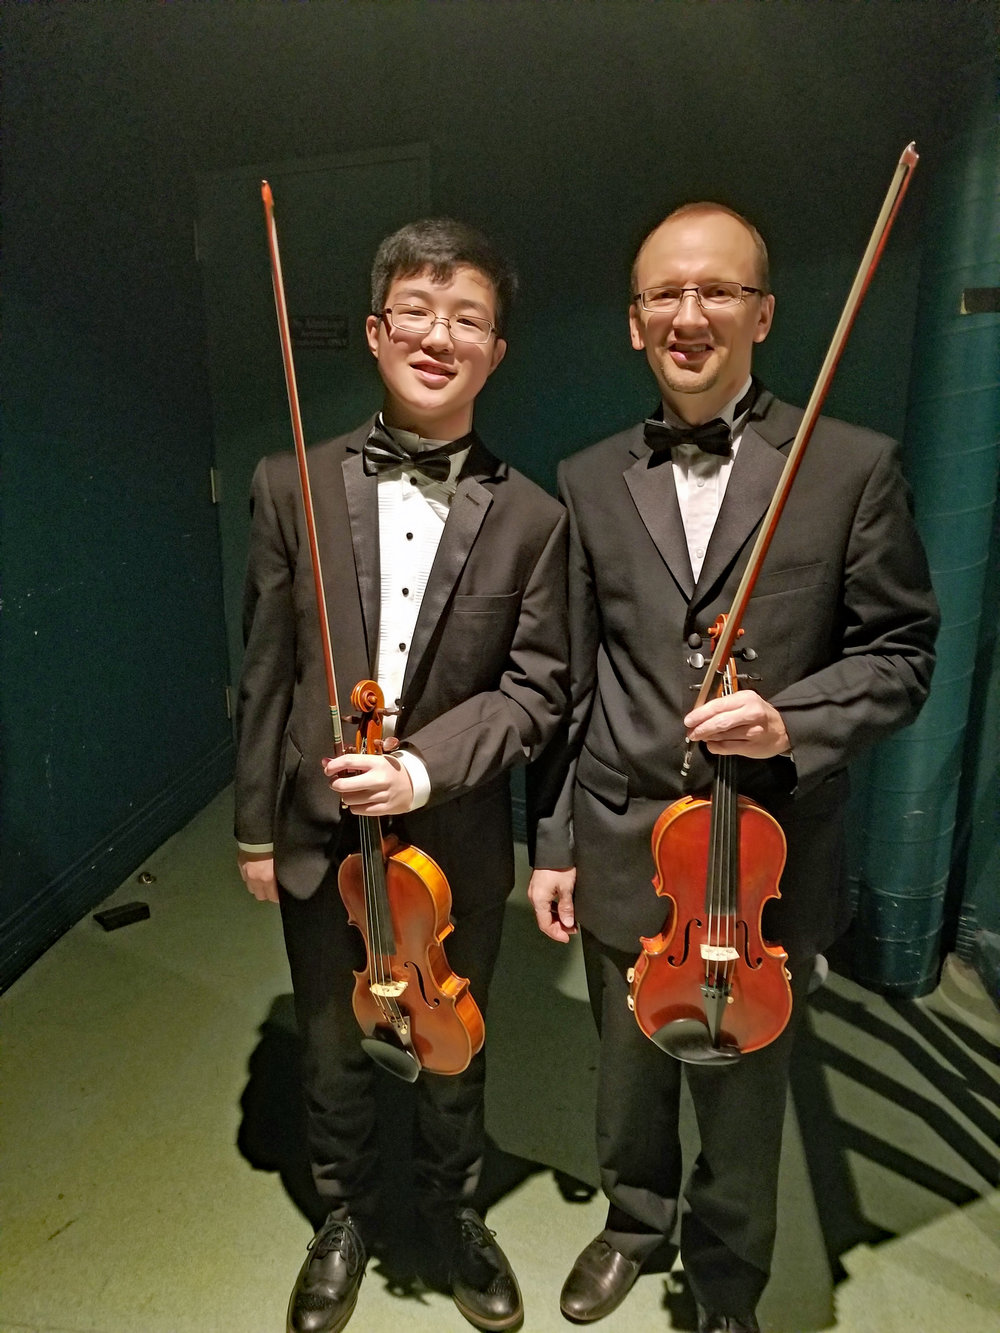 Pierce Wang and Max Baluyev backstage at Vacaville Performing Arts Theater